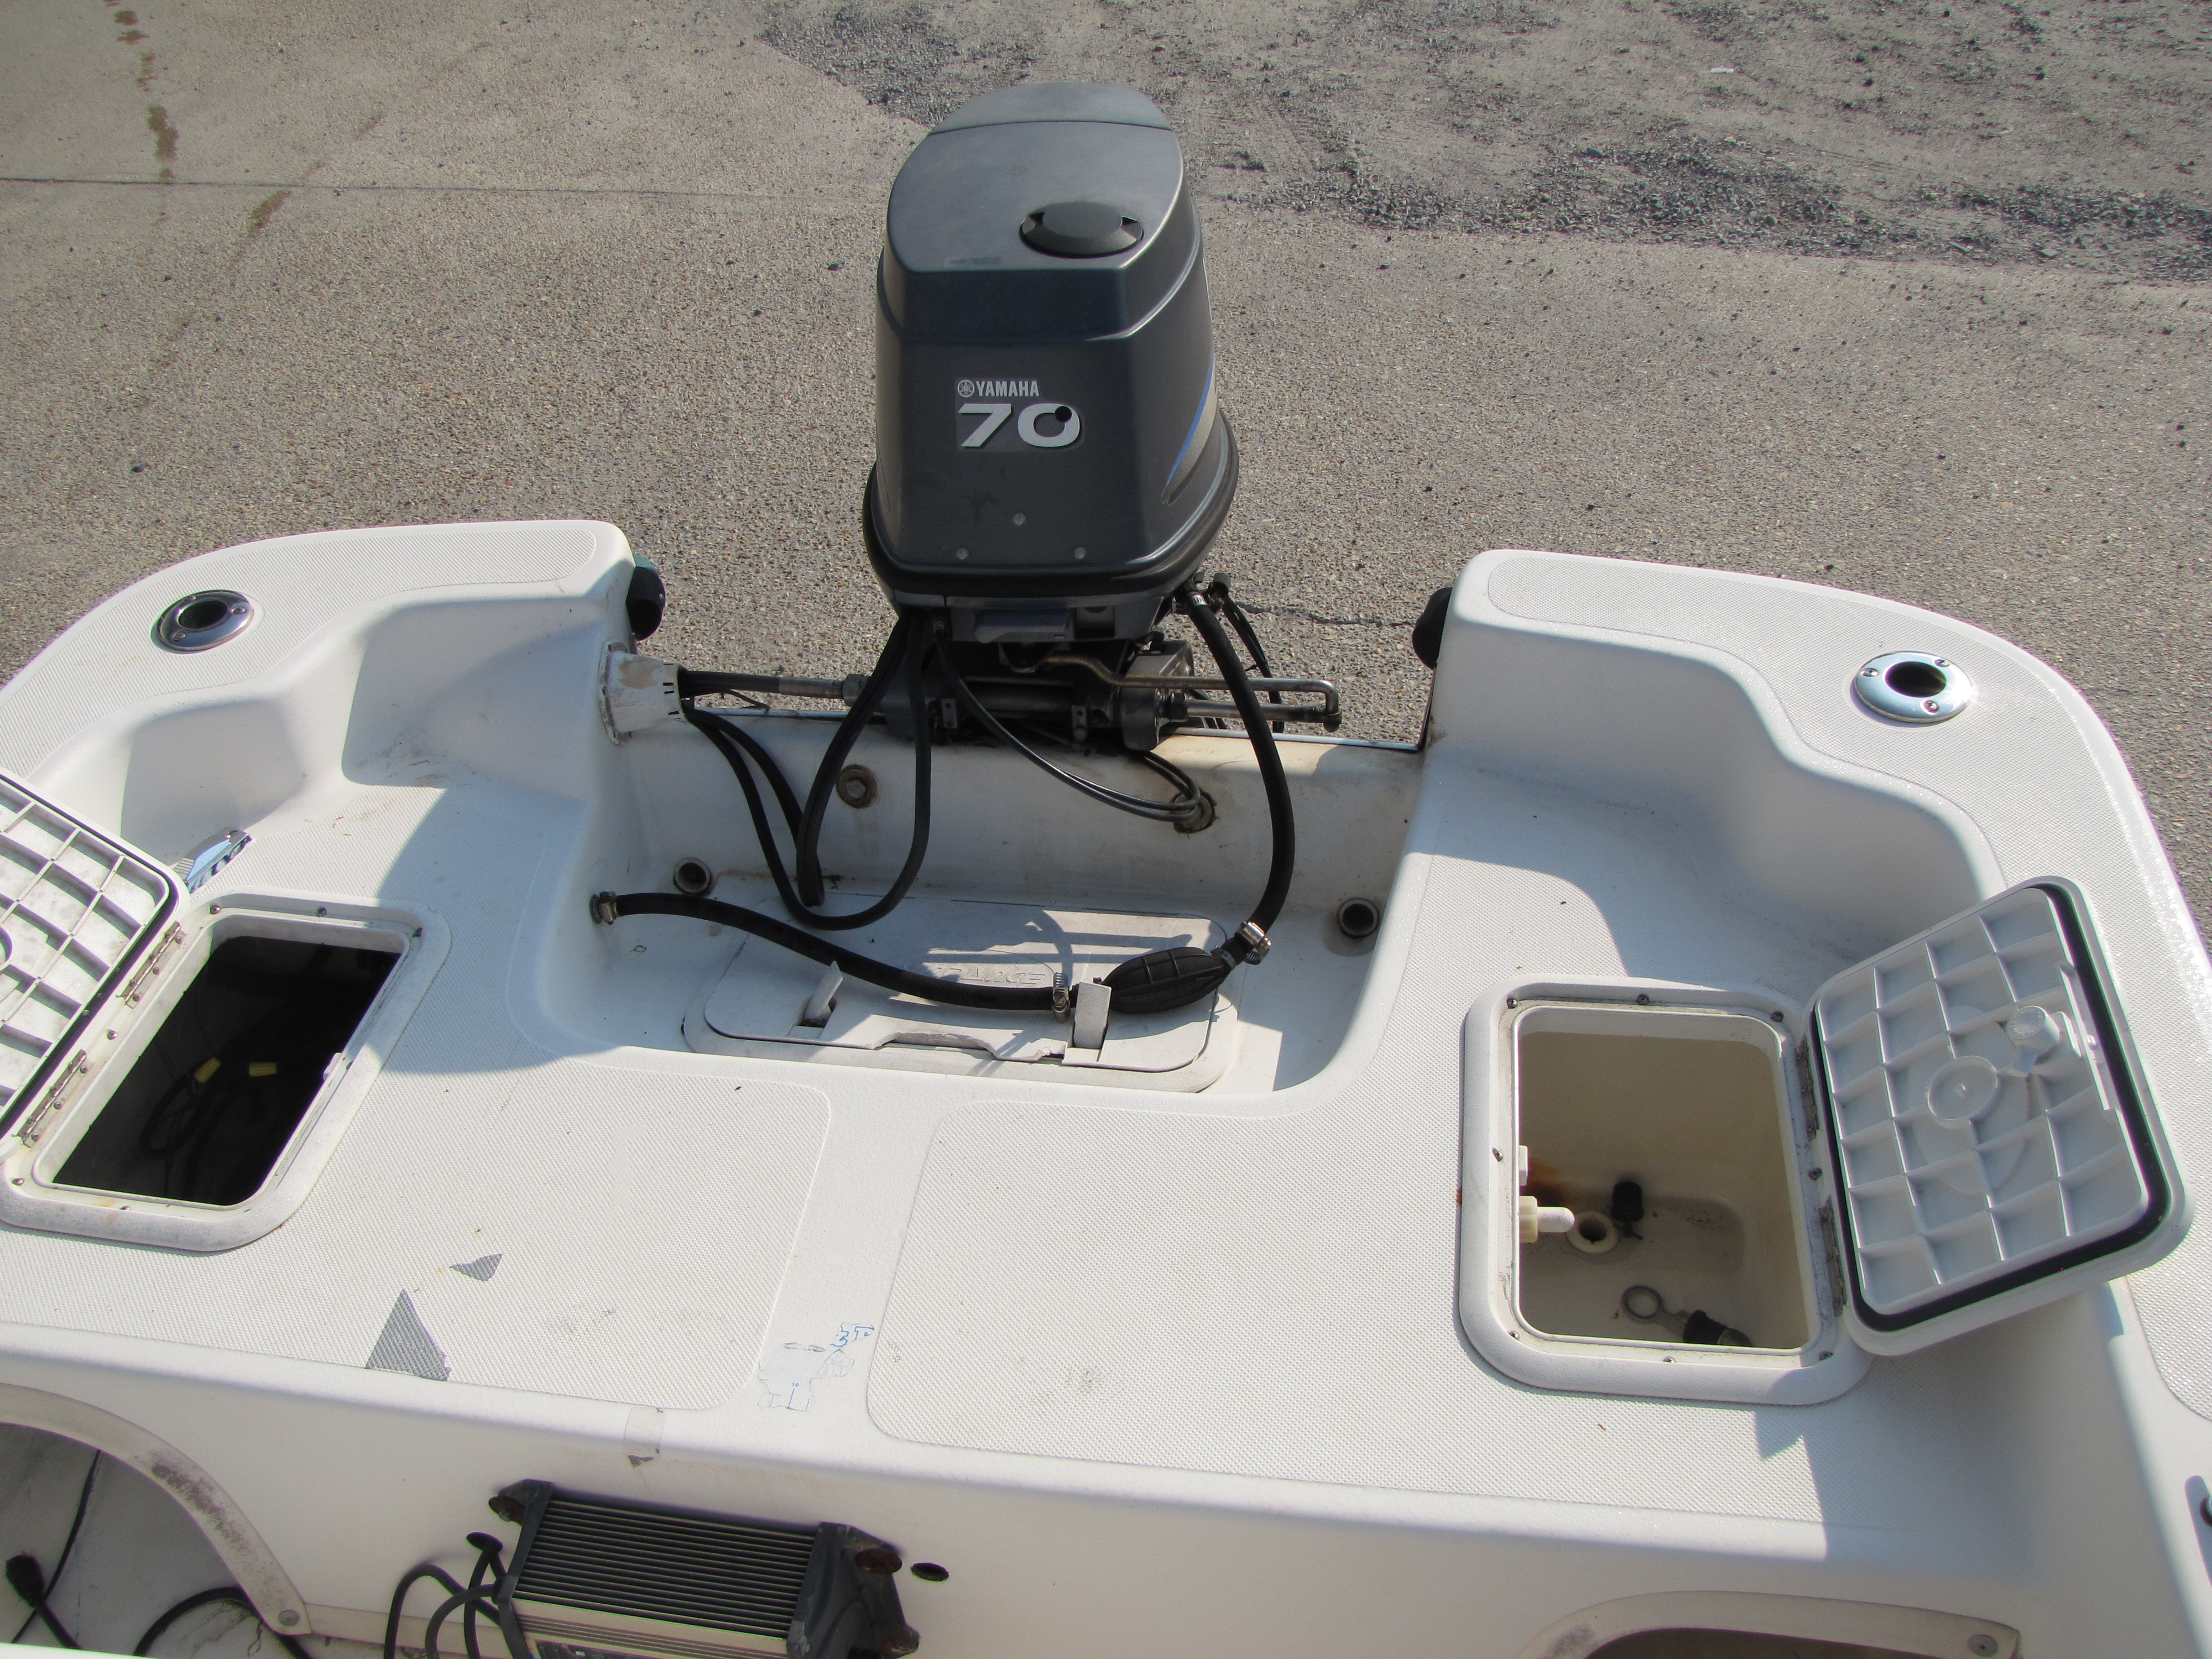 2009 Sundance boat for sale, model of the boat is 17 cc & Image # 9 of 15